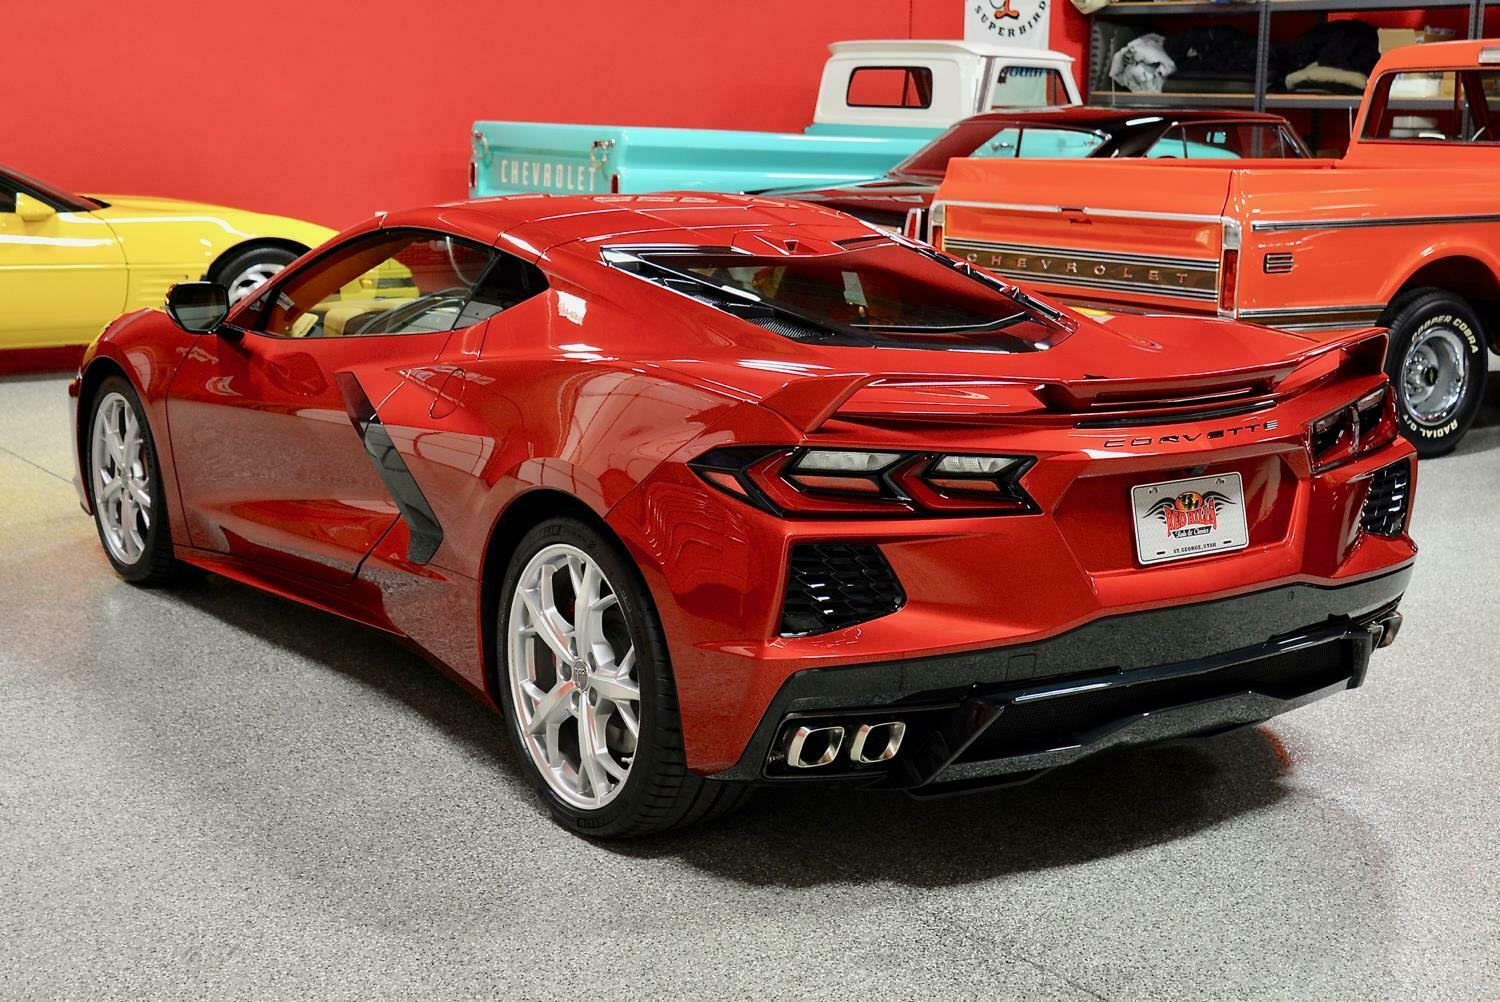 2021 Red Chevrolet Corvette  3LT | C7 Corvette Photo 9